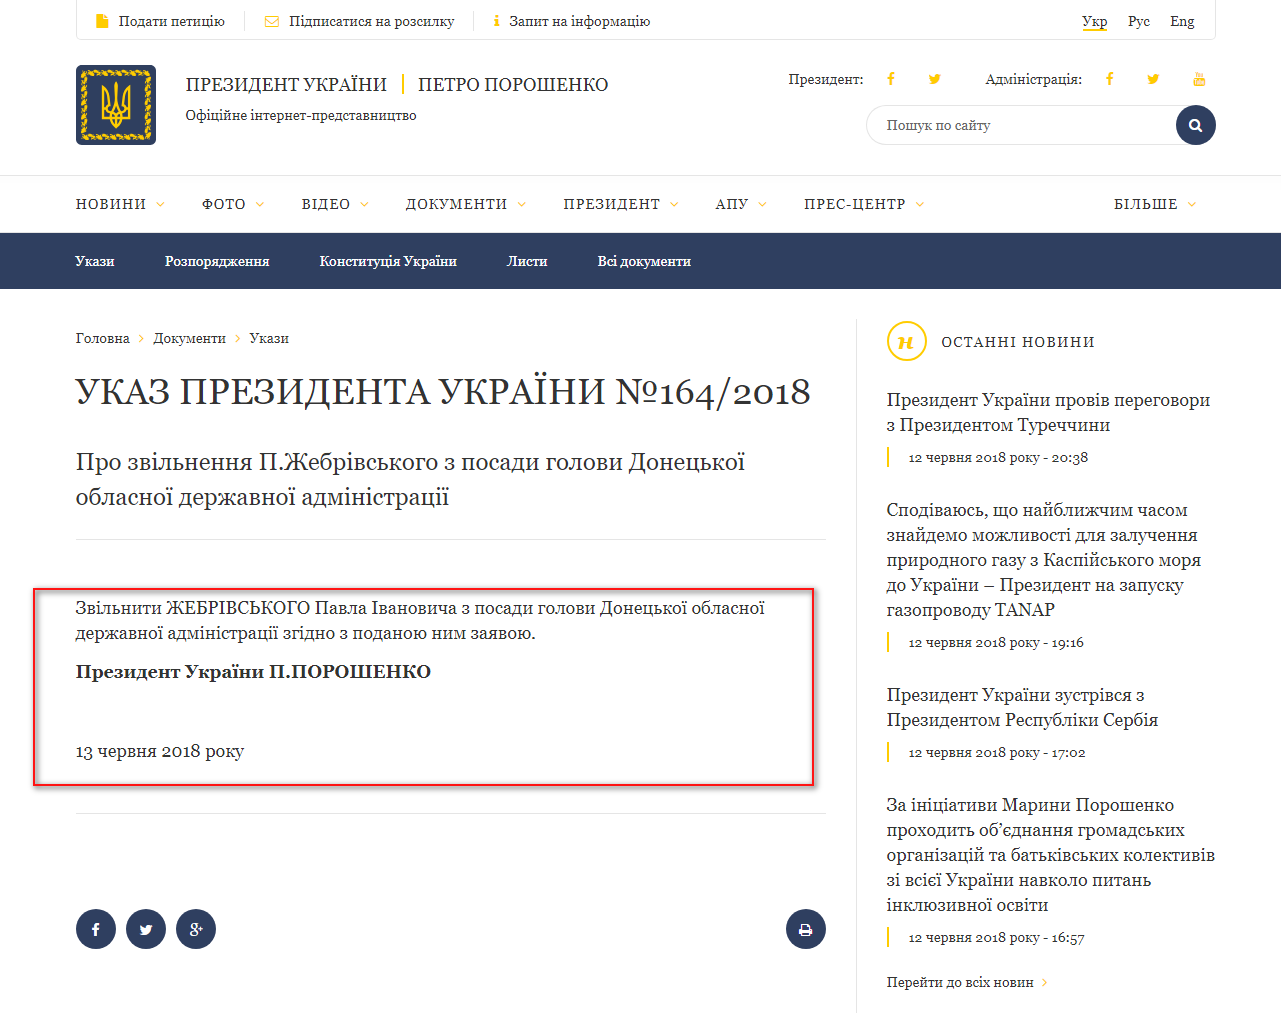 http://www.president.gov.ua/documents/1642018-24298